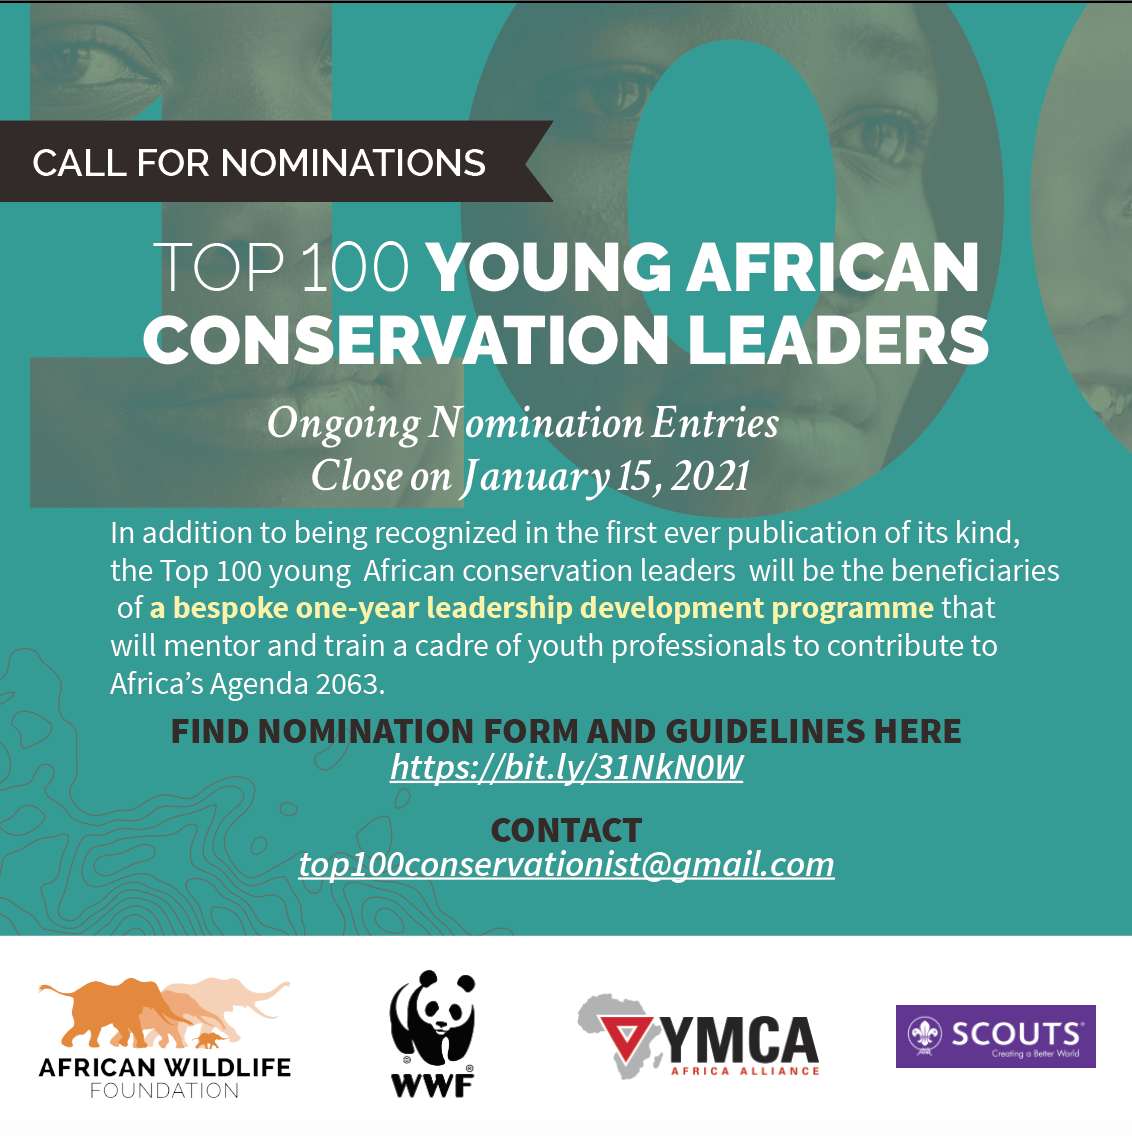 Top 100 Young African Conservation Leaders Award